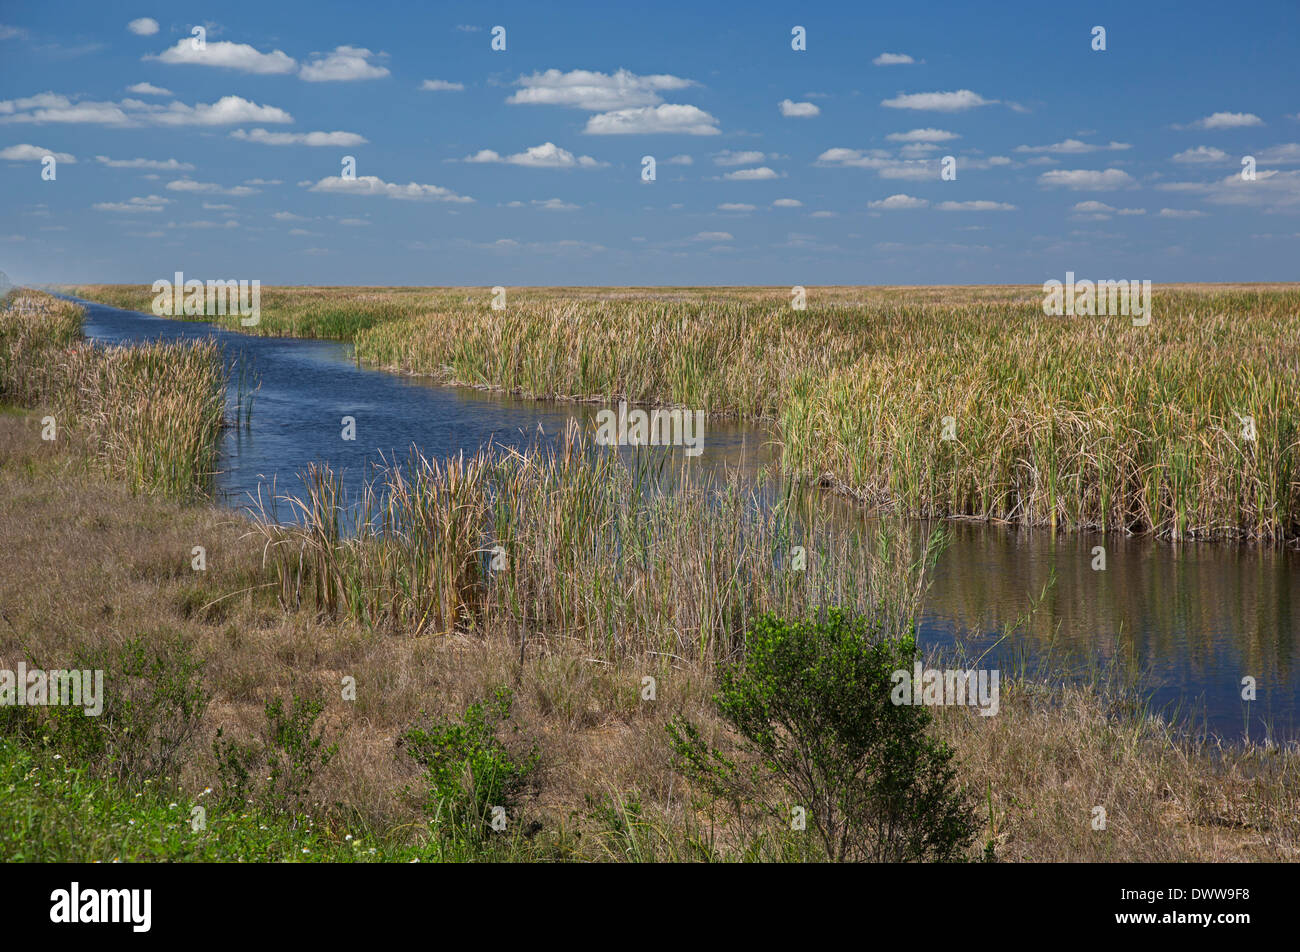 The largest constructed wetland in the world reduces the amount of phosphorus flowing from farmland into the Everglades. - Stock Image